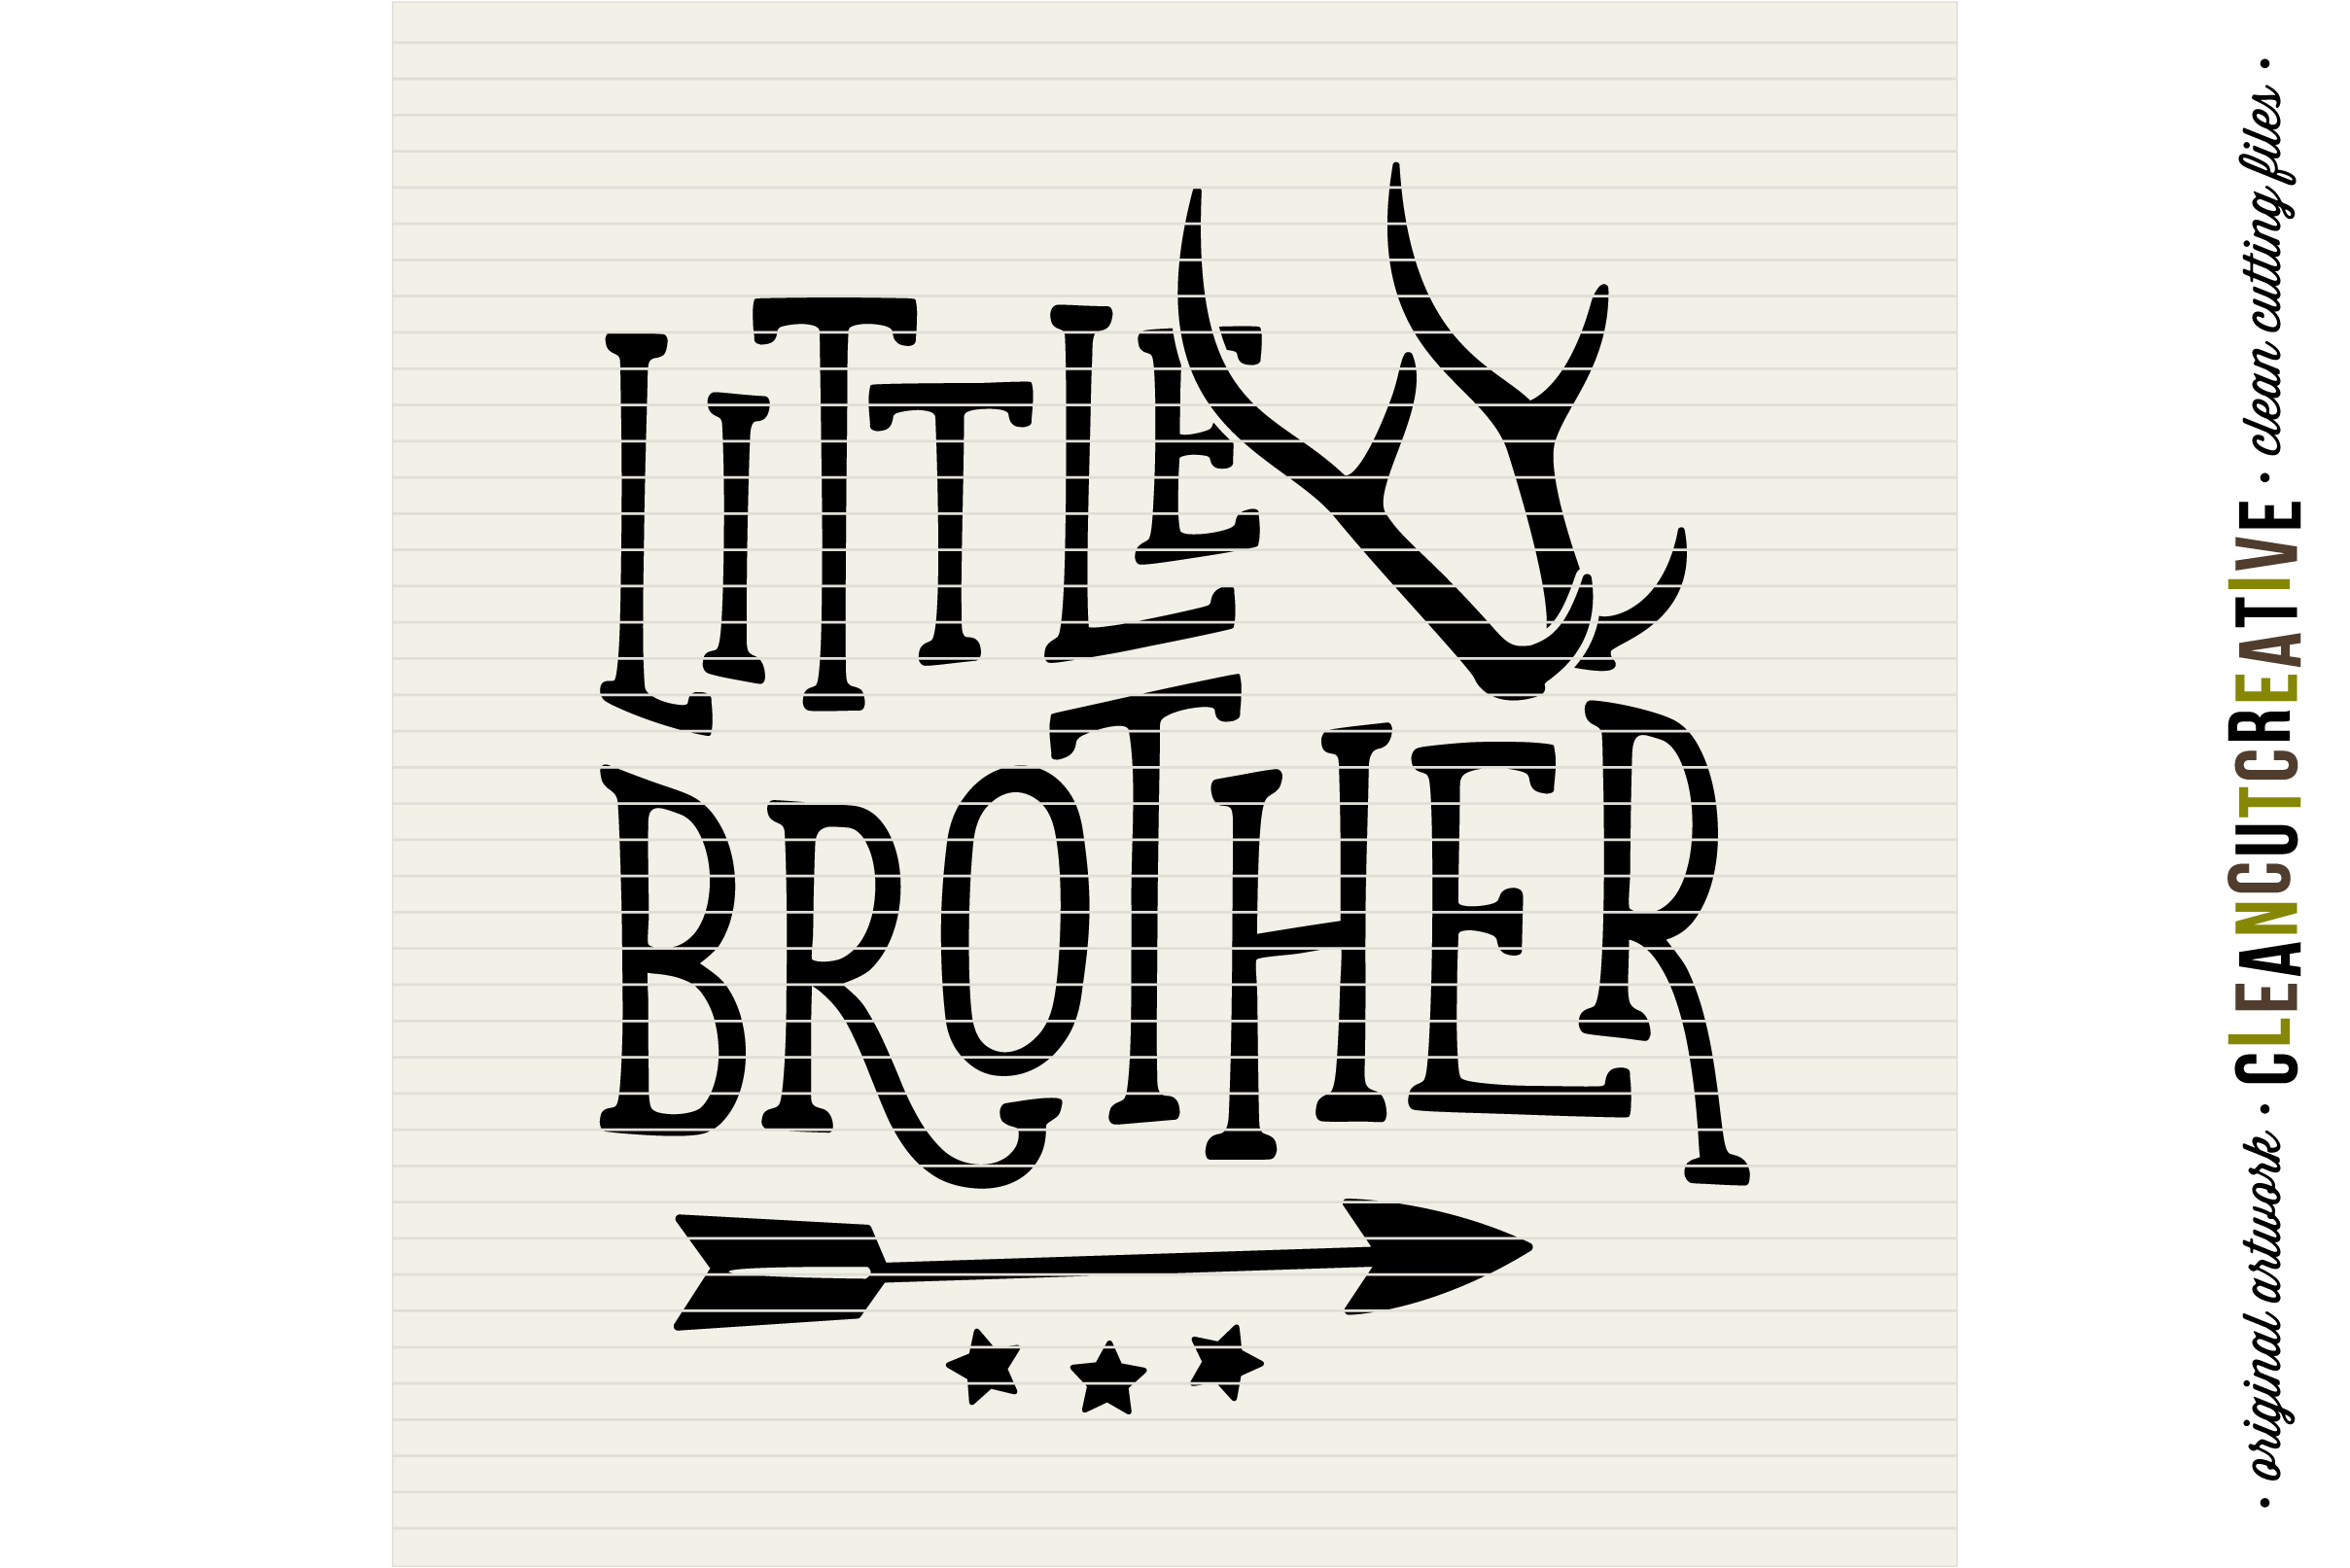 LITTLE BROTHER cutfile design with antlers and arrow - SVG DXF EPS PNG - cut file cutting file clipart - Cricut and Silhouette - clean cutting files example image 3